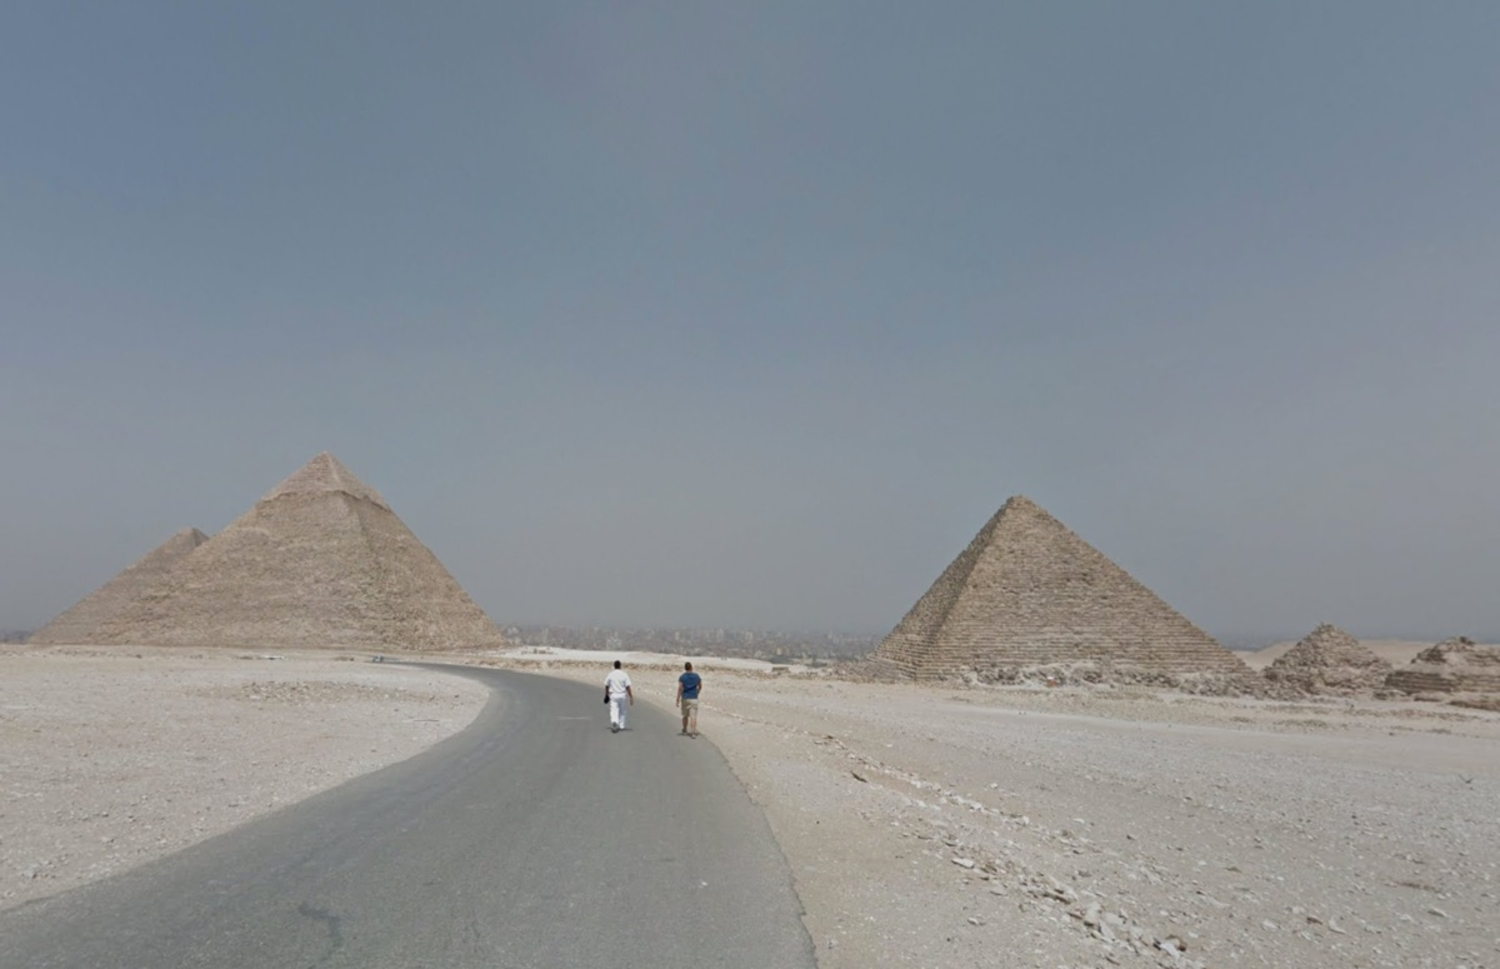 Too Dangerous to Visit the Pyramids? Use Street View!